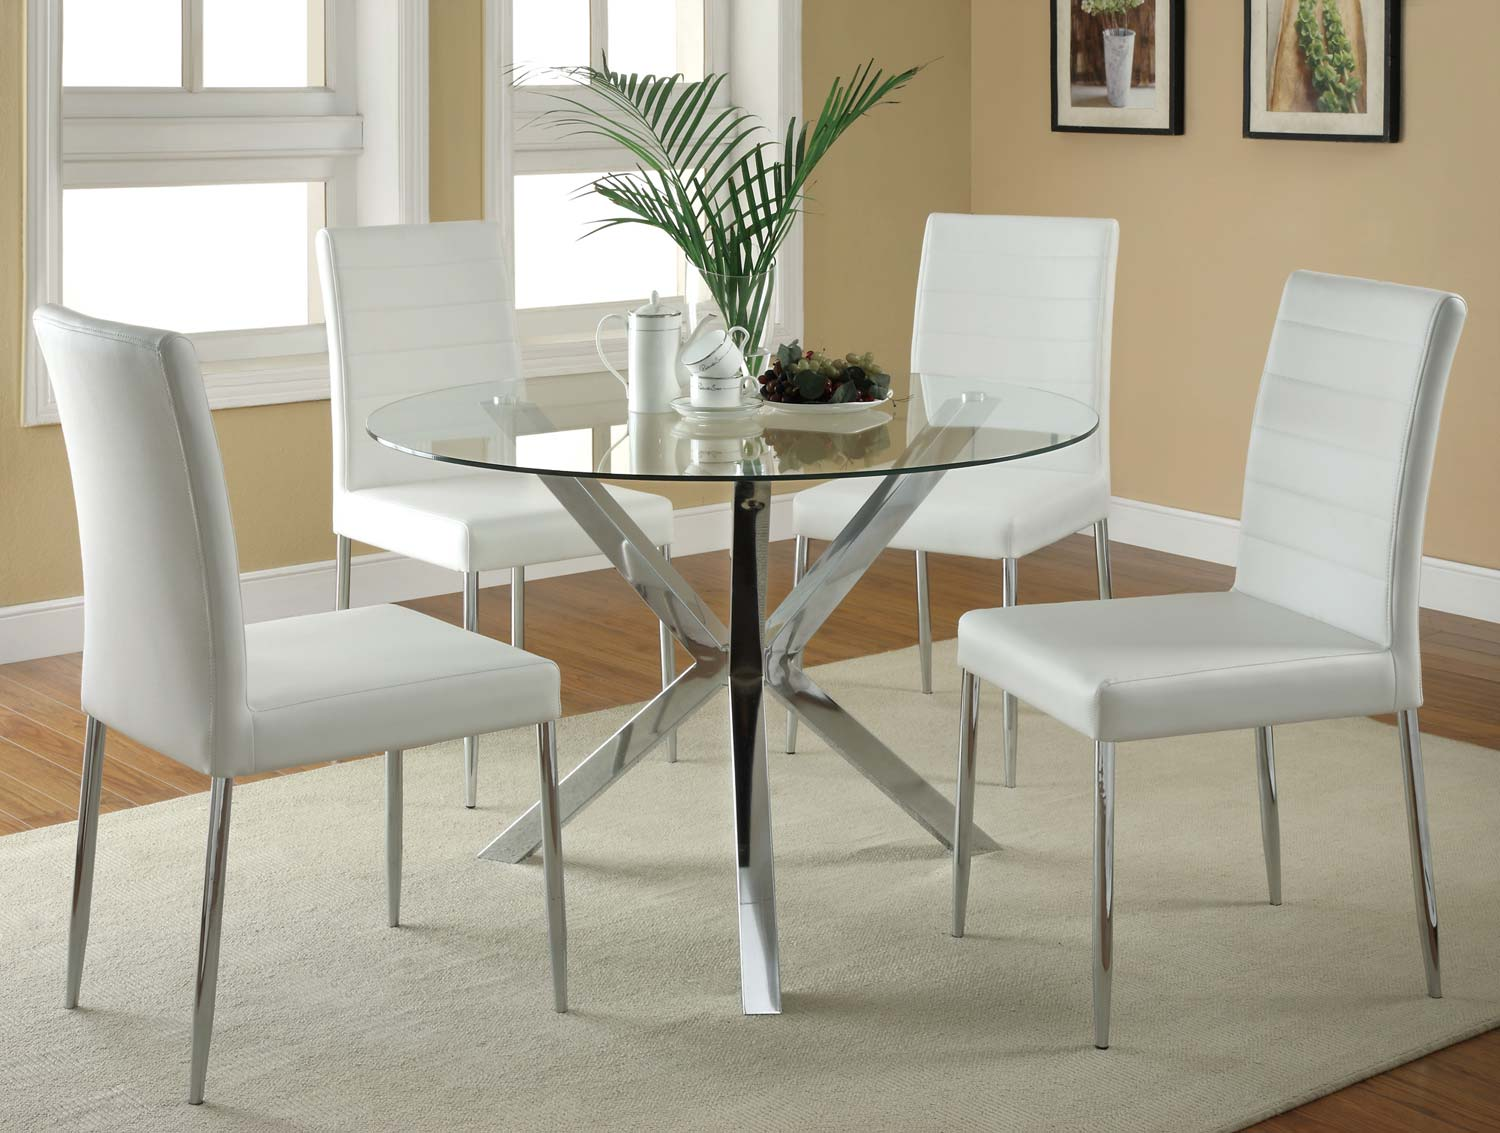 Coaster Vance Round Glass Dining Set - White Chair